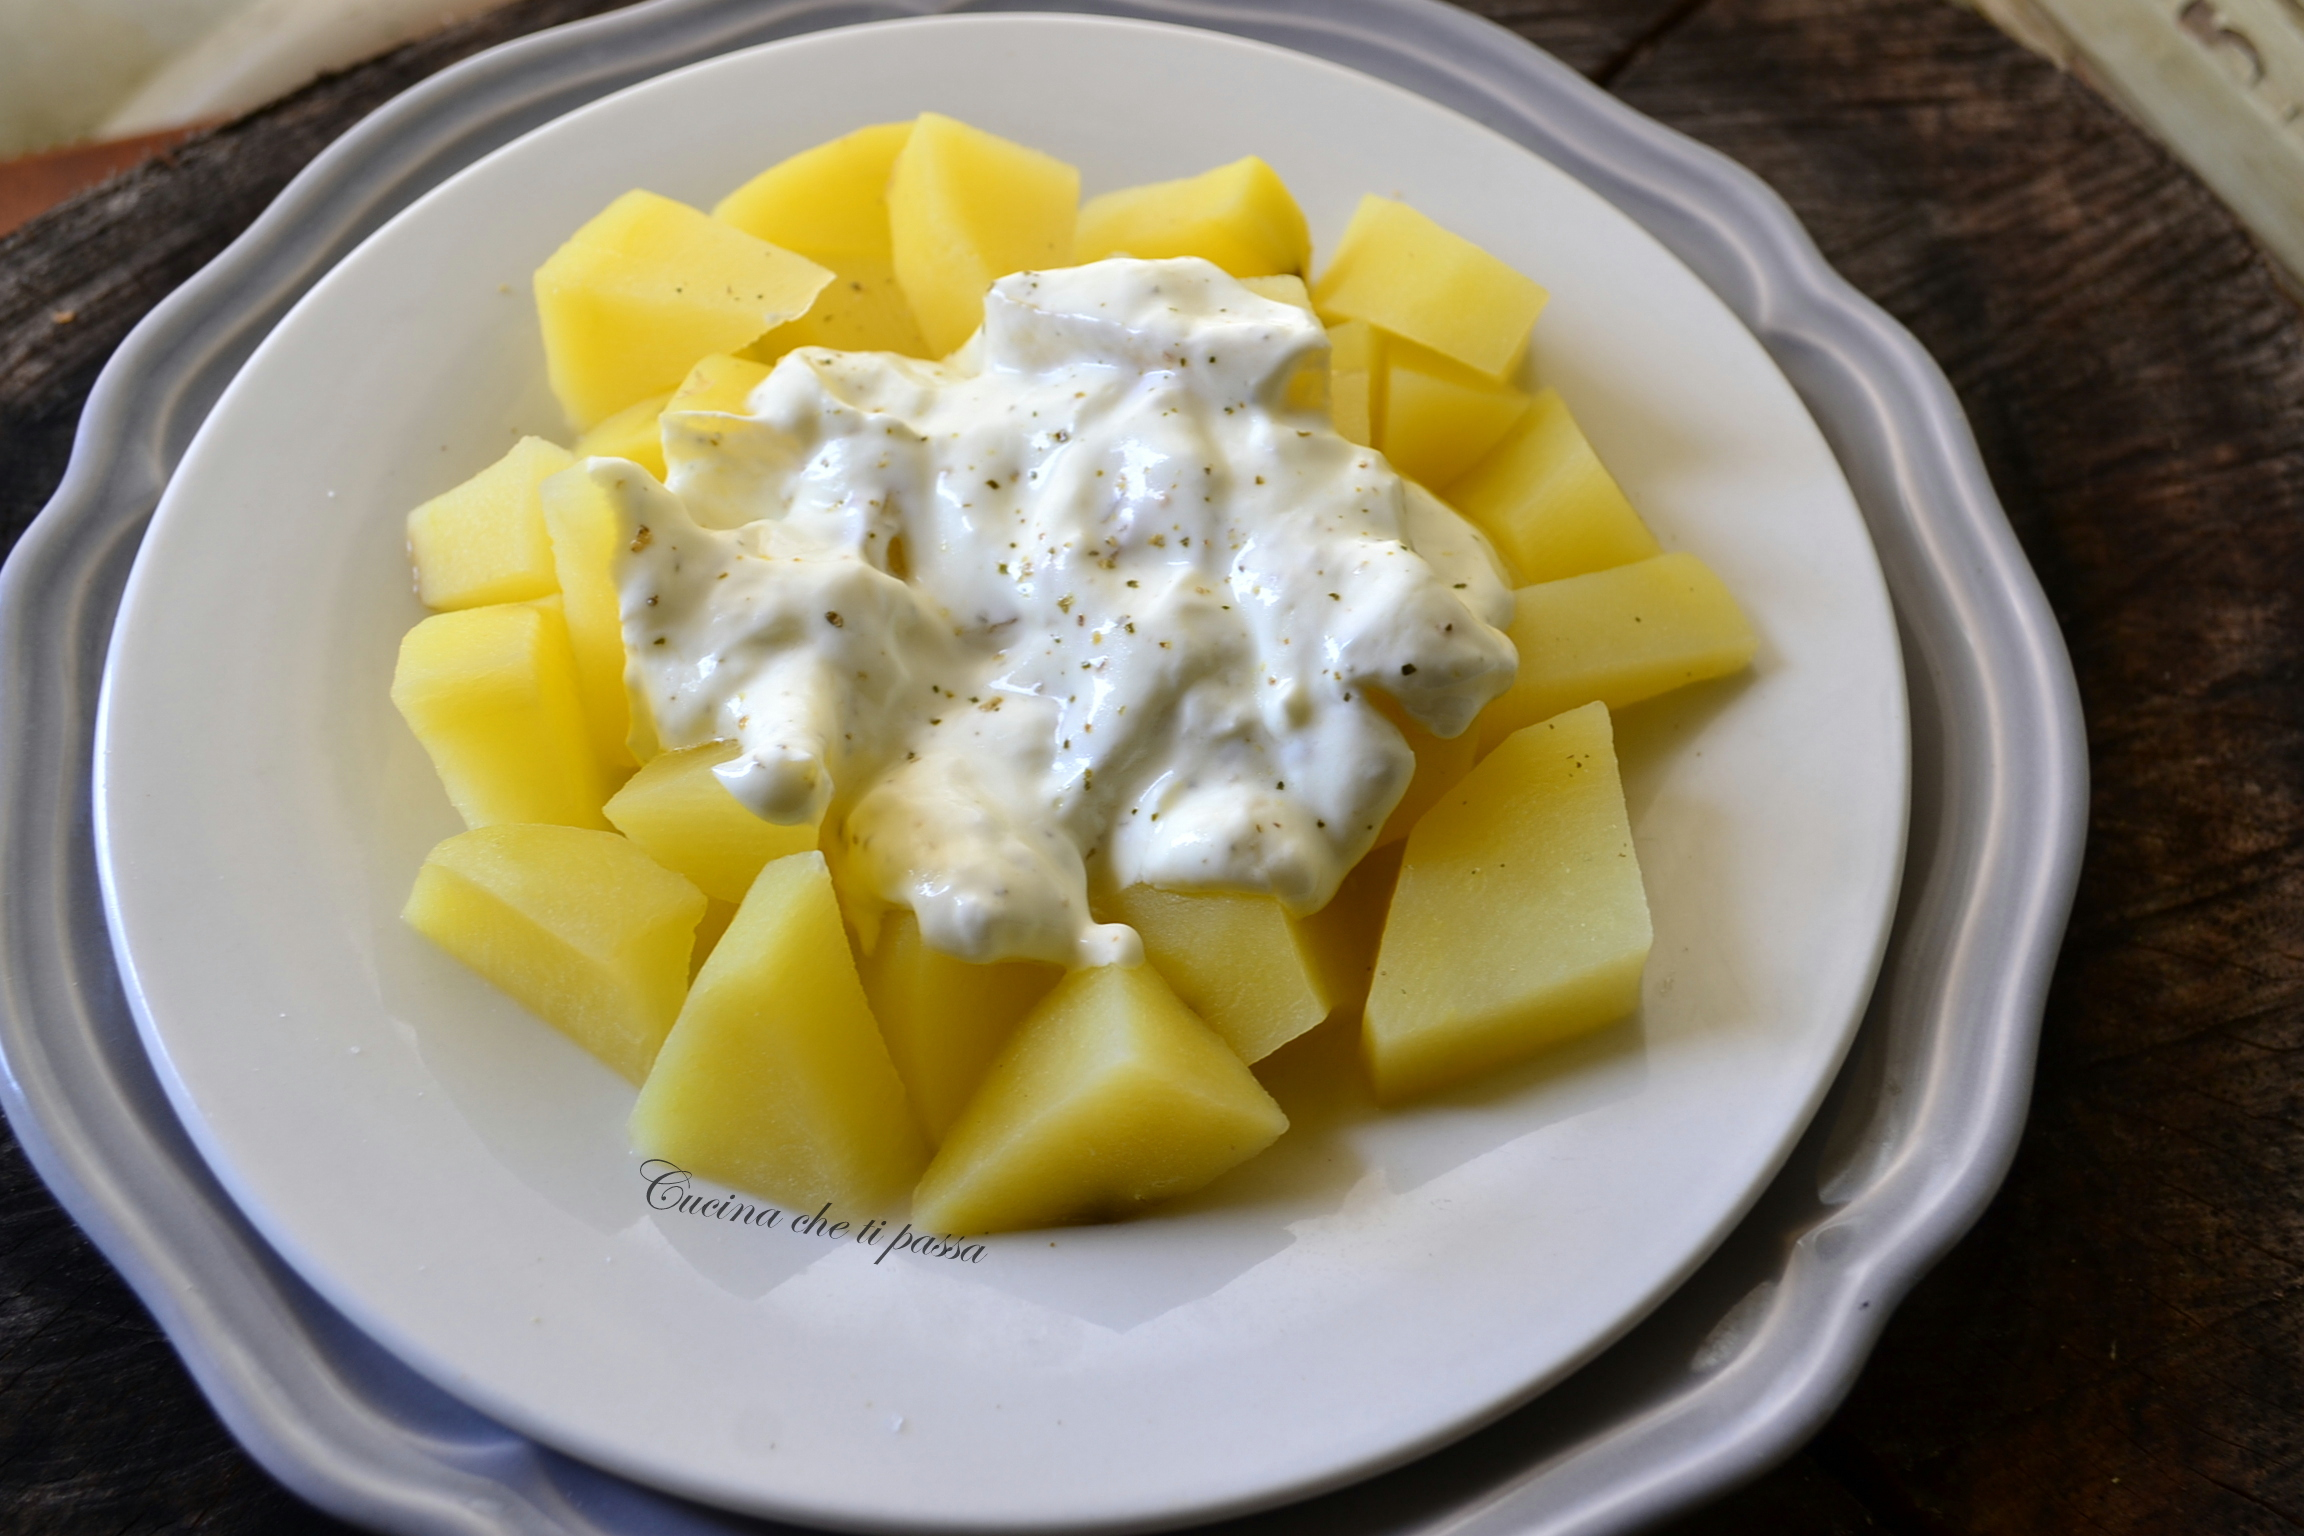 PATATE CON CREMA DI YOGURT